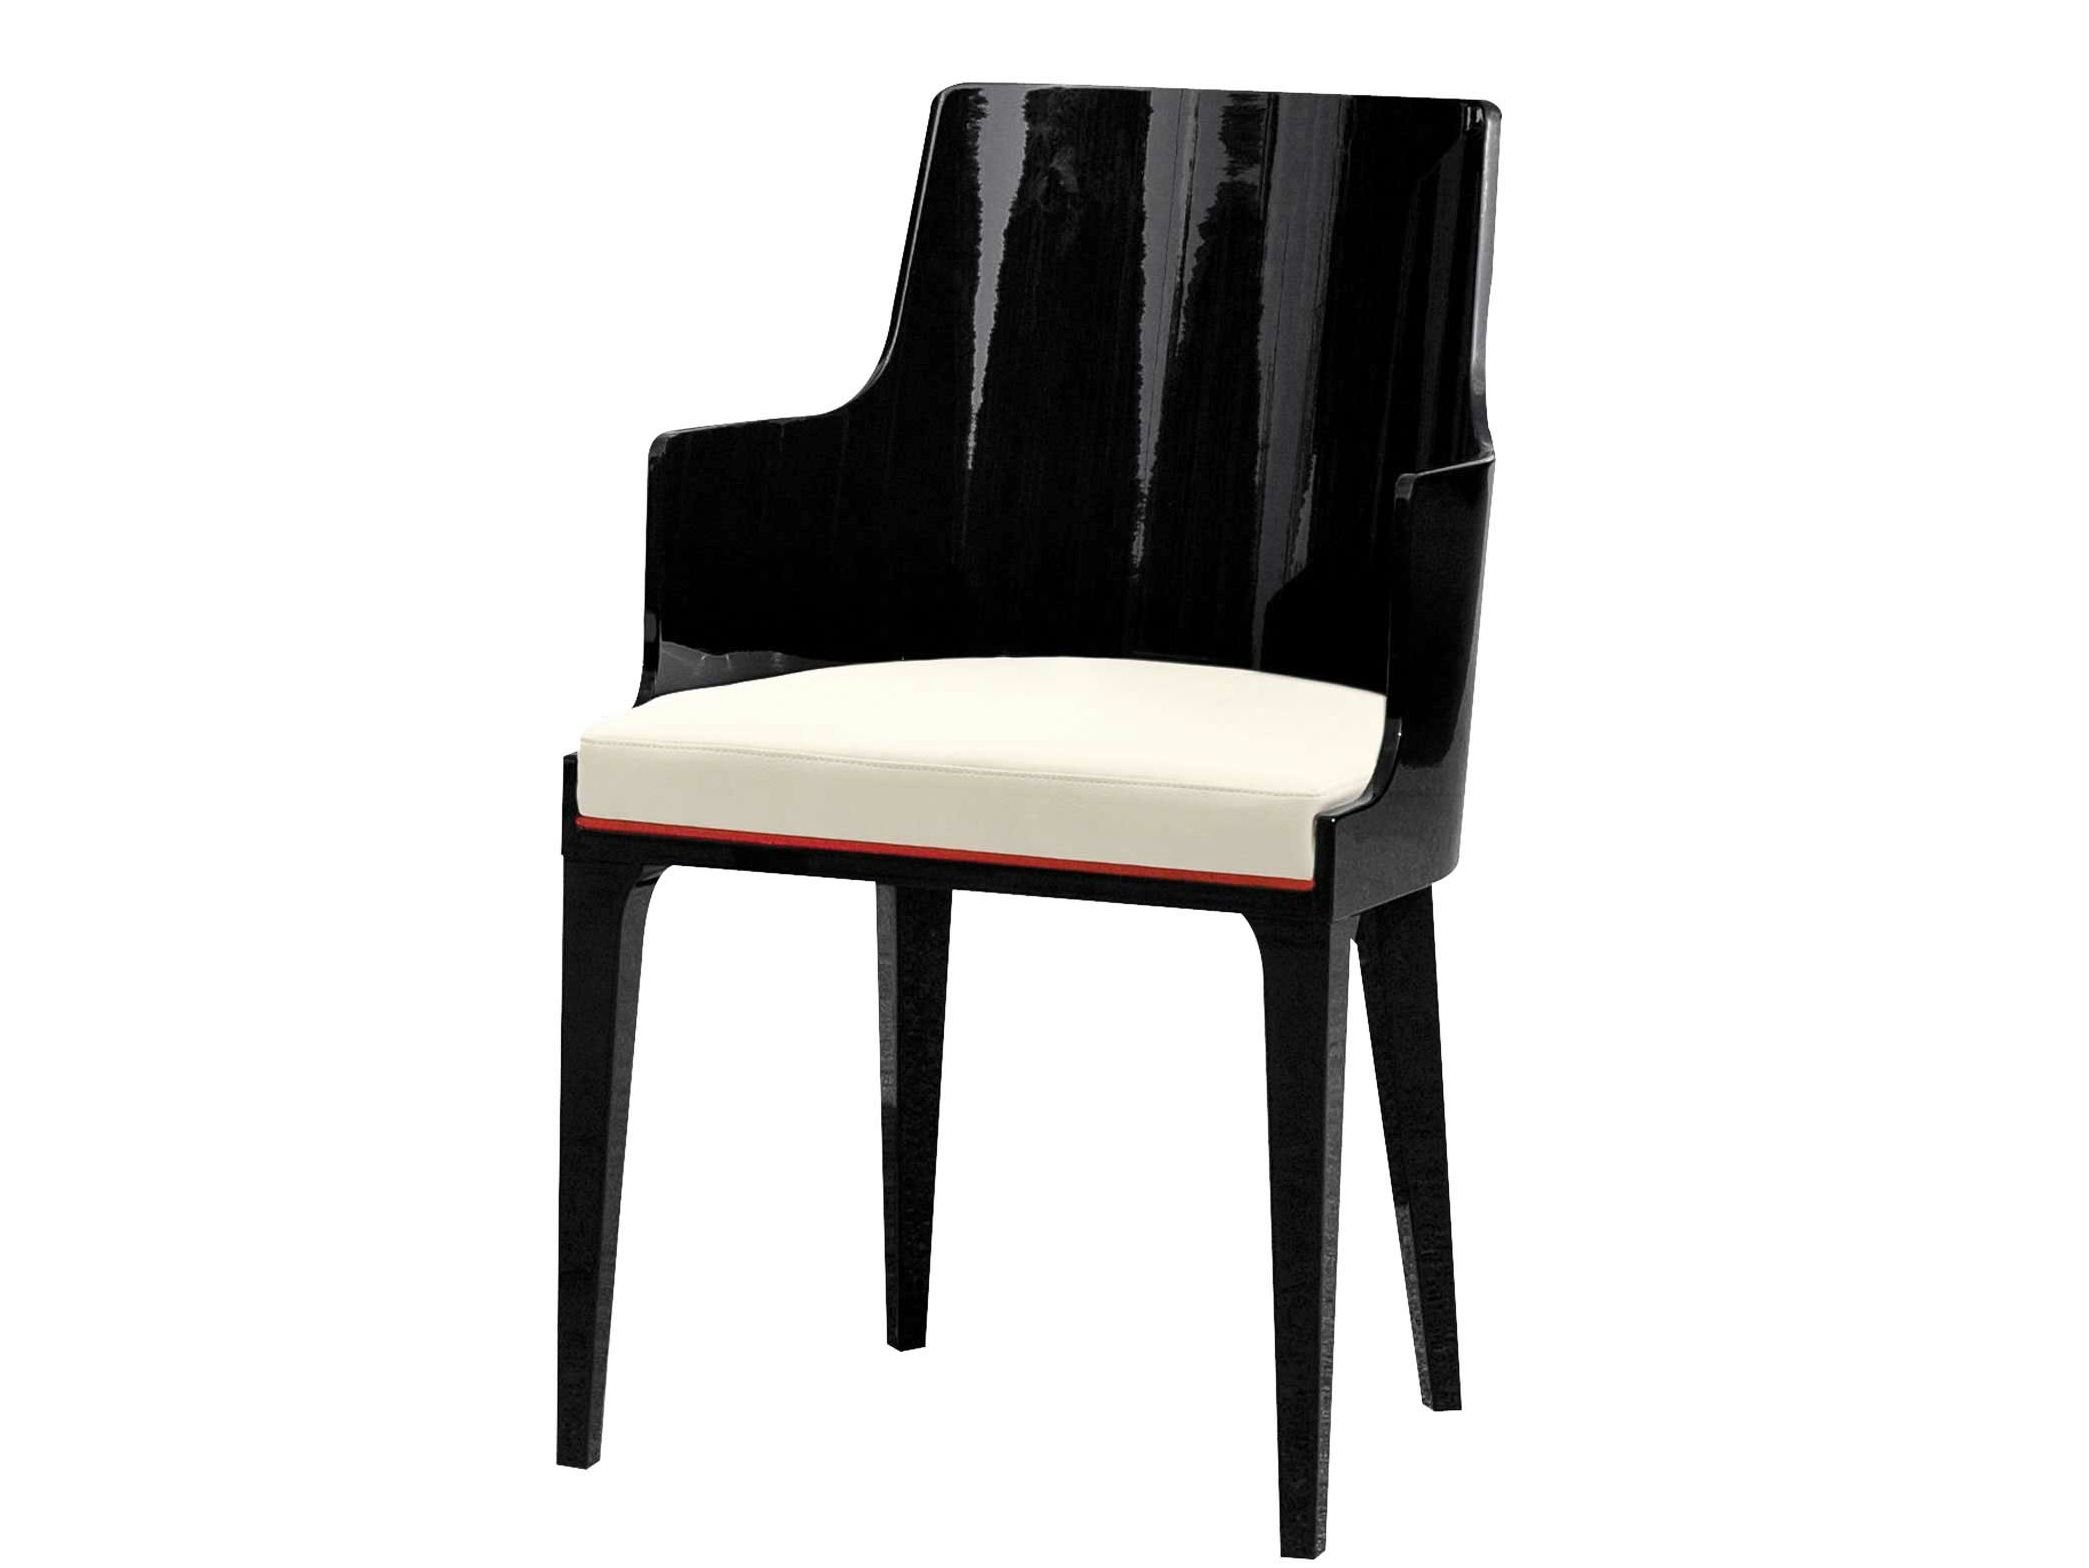 chaise en cuir avec accoudoirs pianoforte collection nouveaux classiques by roche bobois. Black Bedroom Furniture Sets. Home Design Ideas